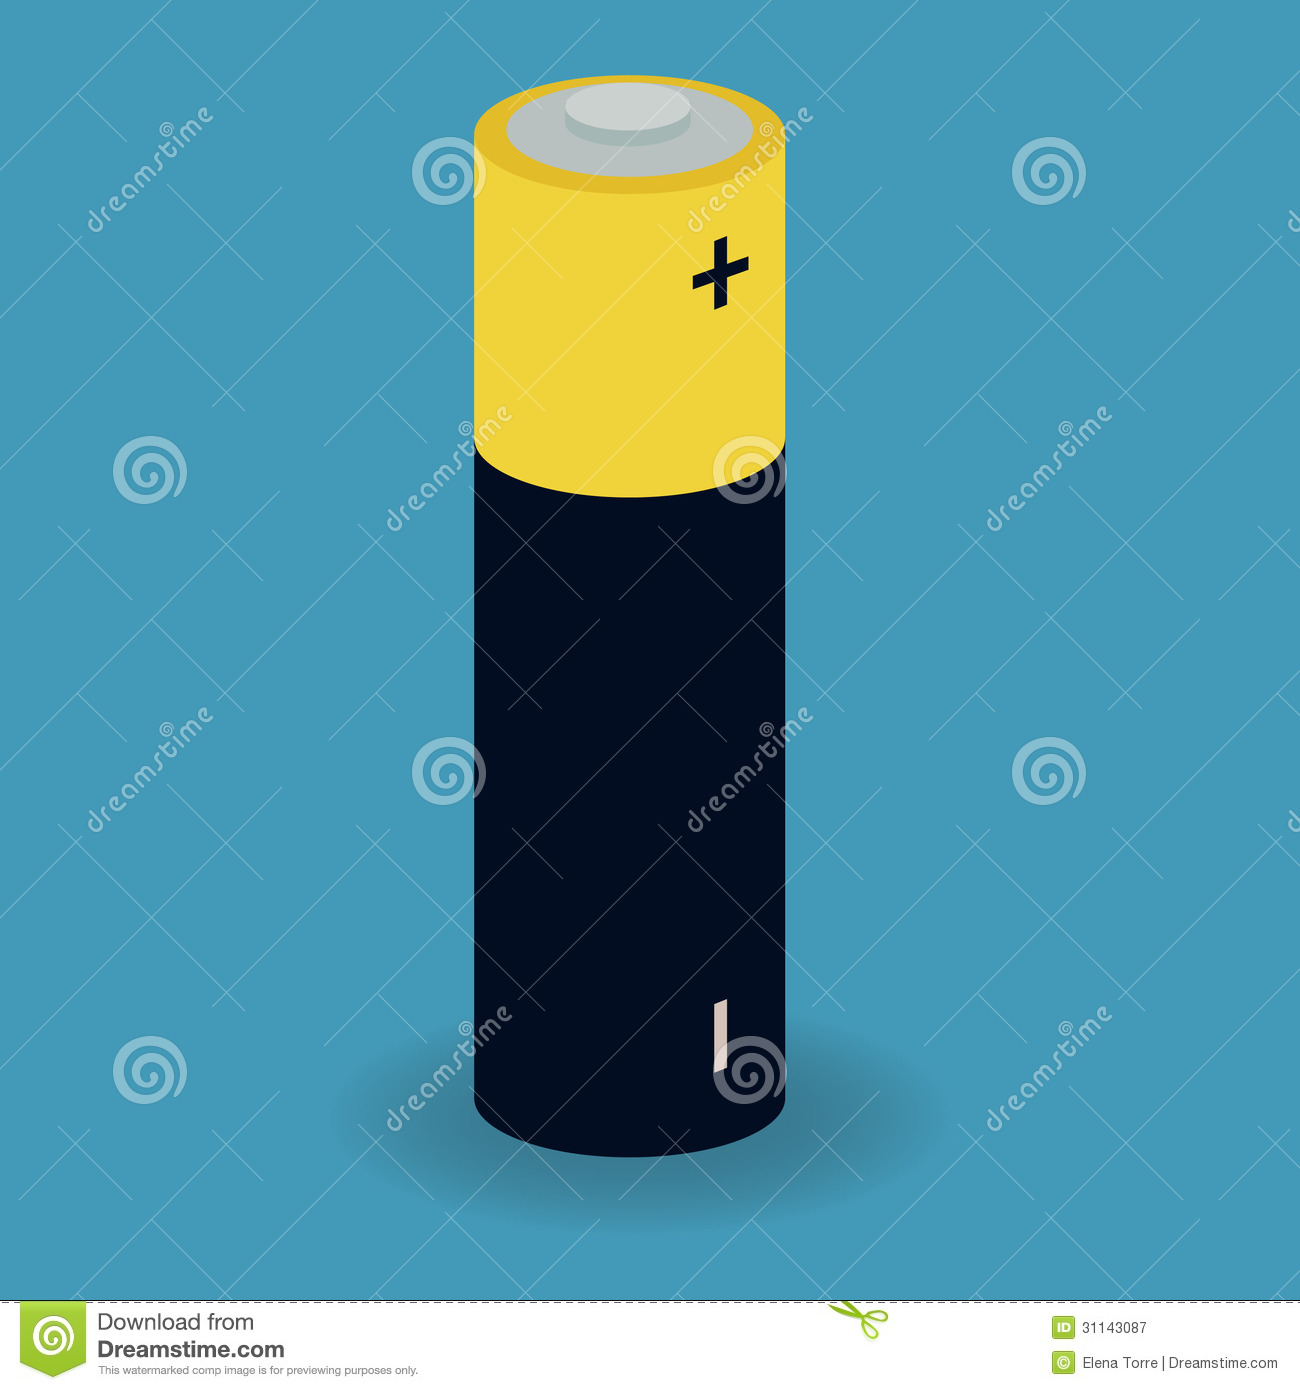 Battery Royalty Free Stock Photography - Image: 31143087